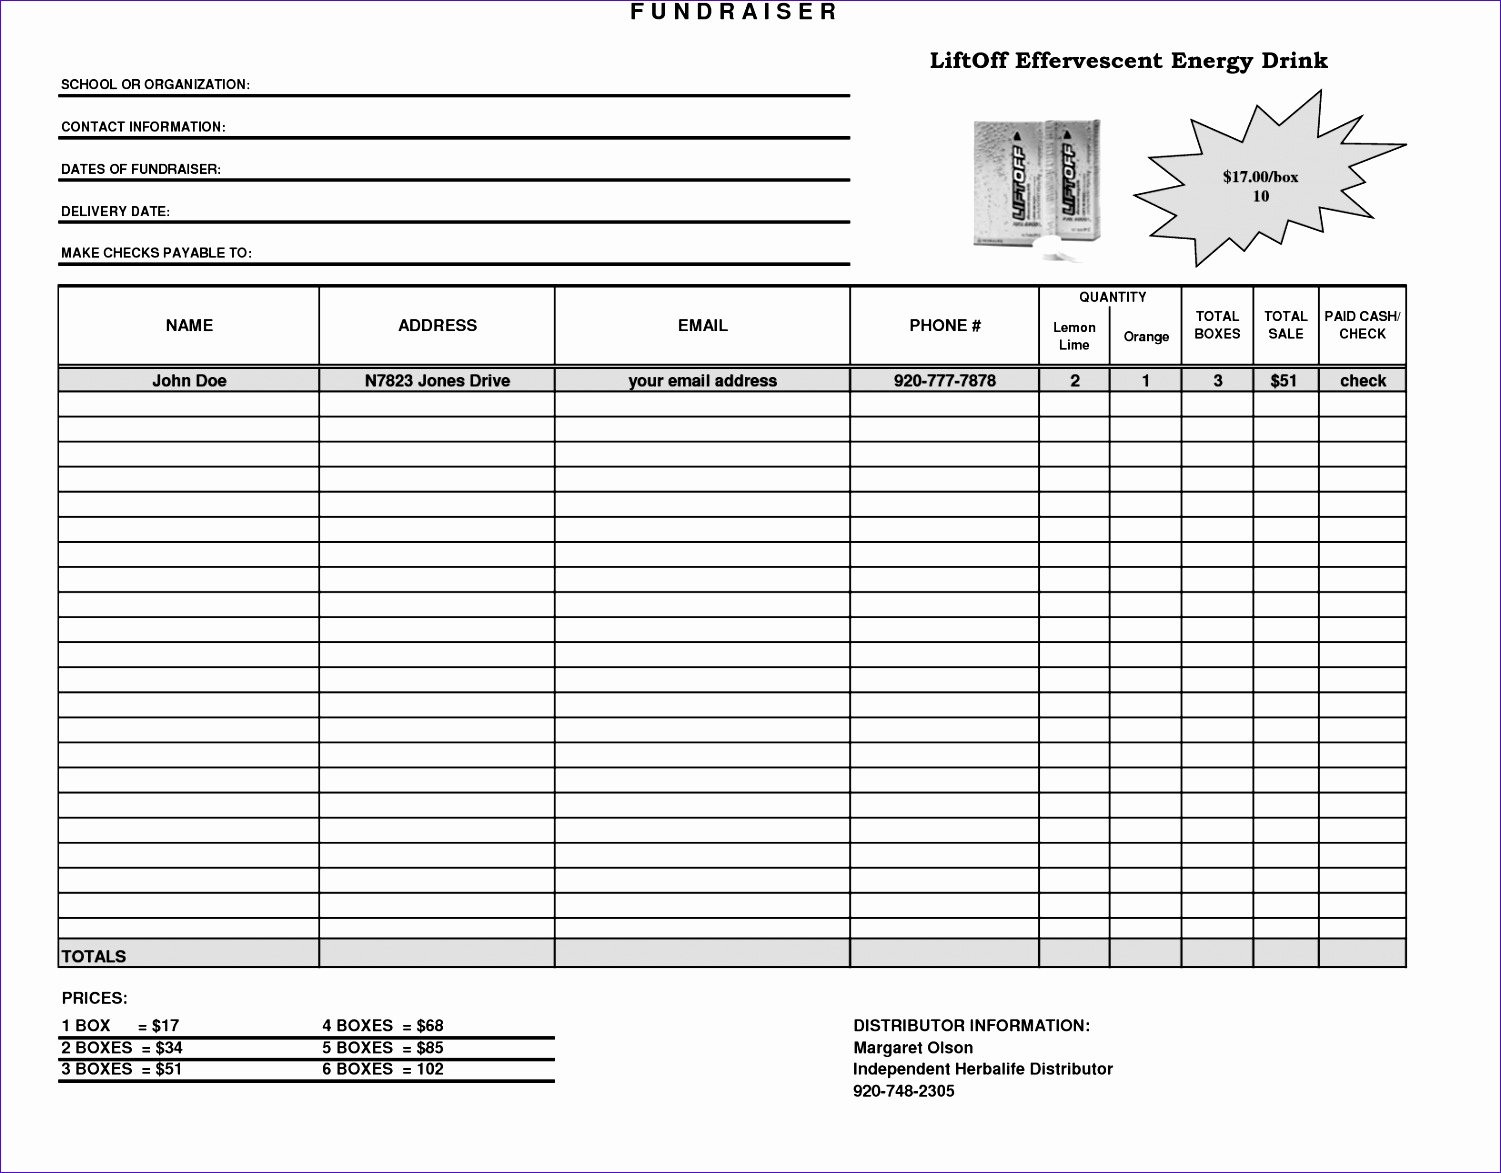 Fundraiser order form Template Free Fresh 10 Making A Template In Excel Exceltemplates